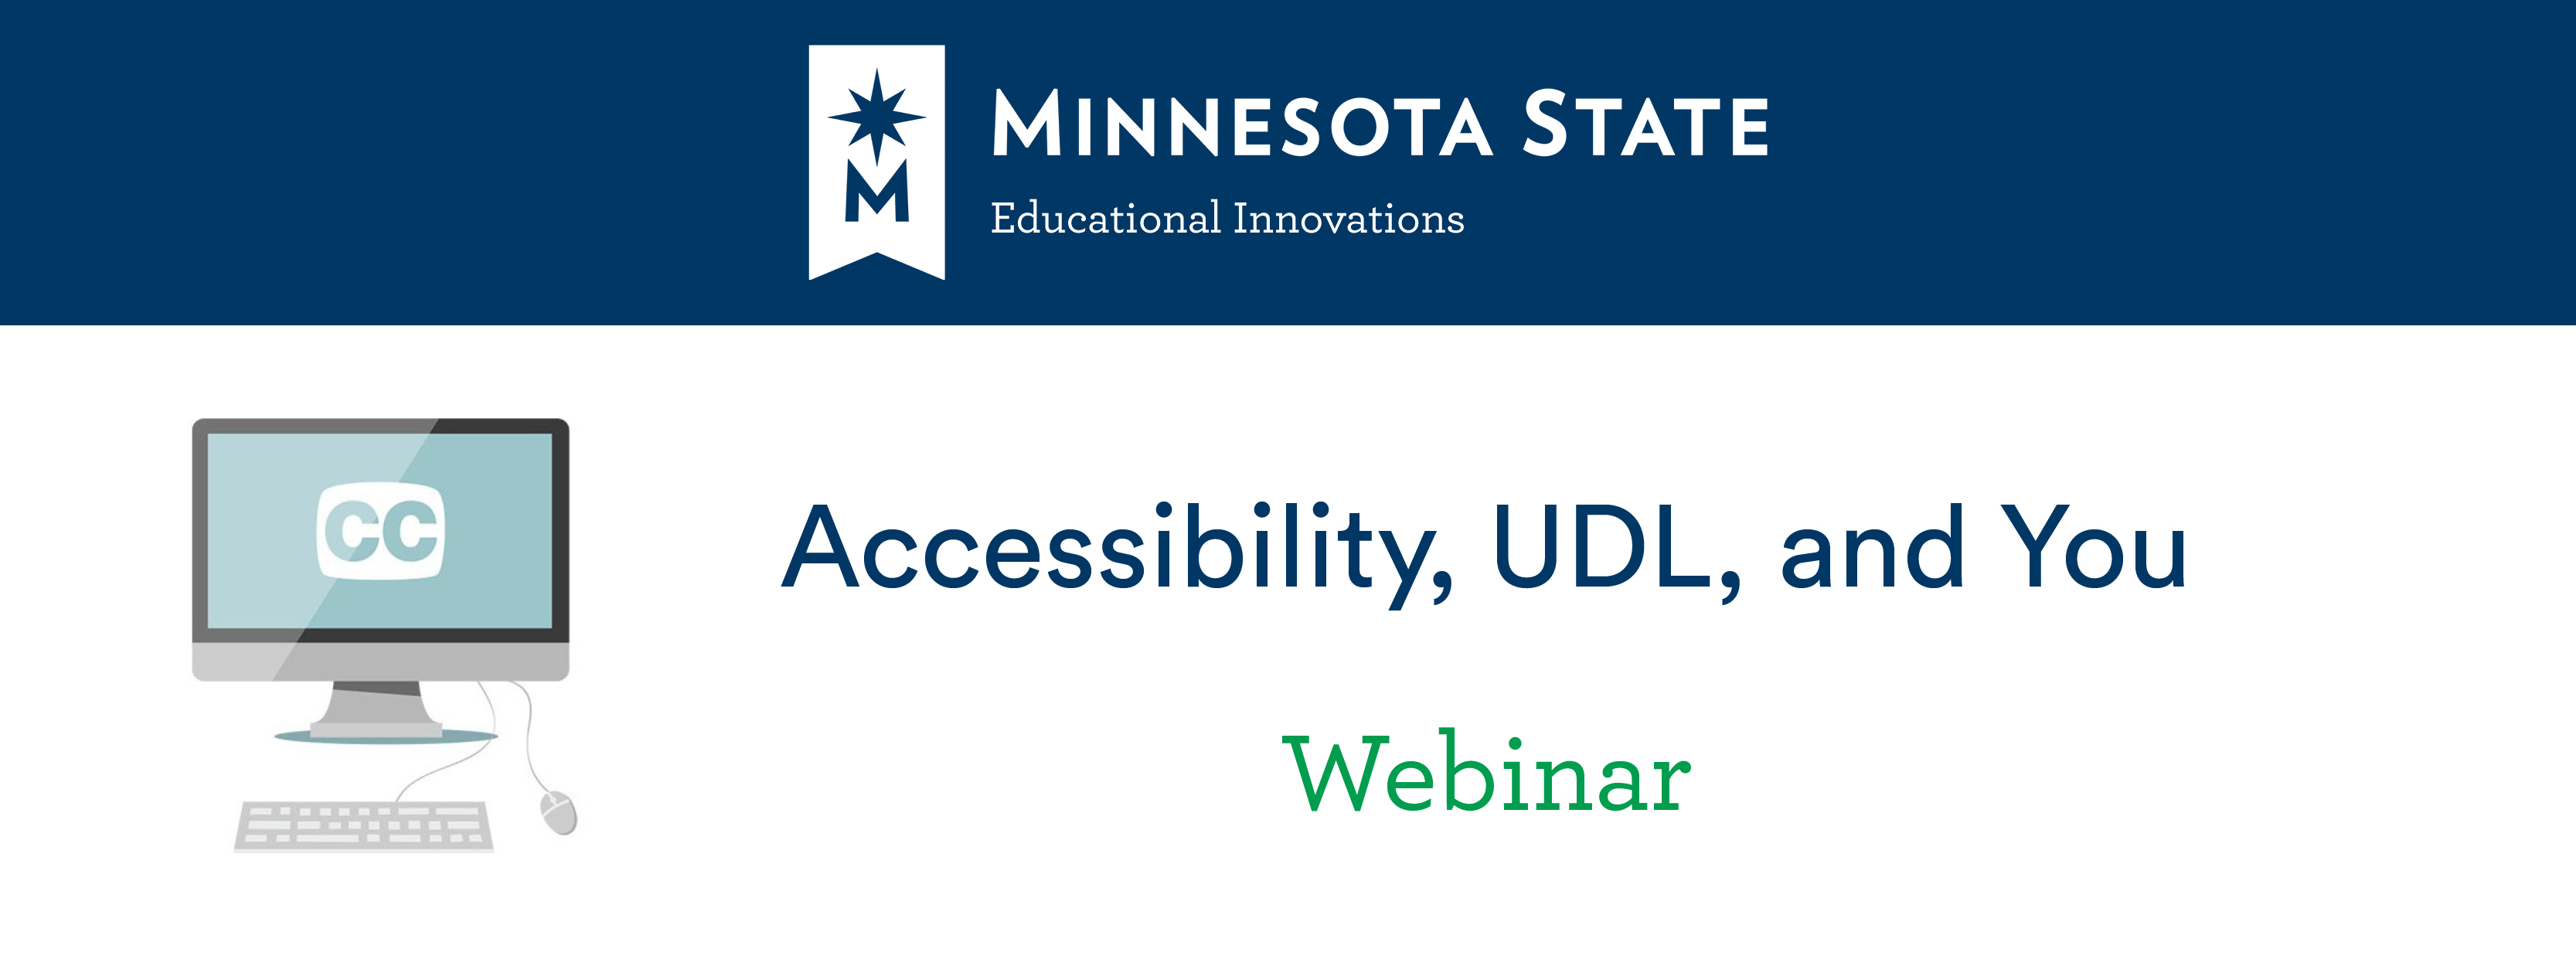 Accessibility UDL and You